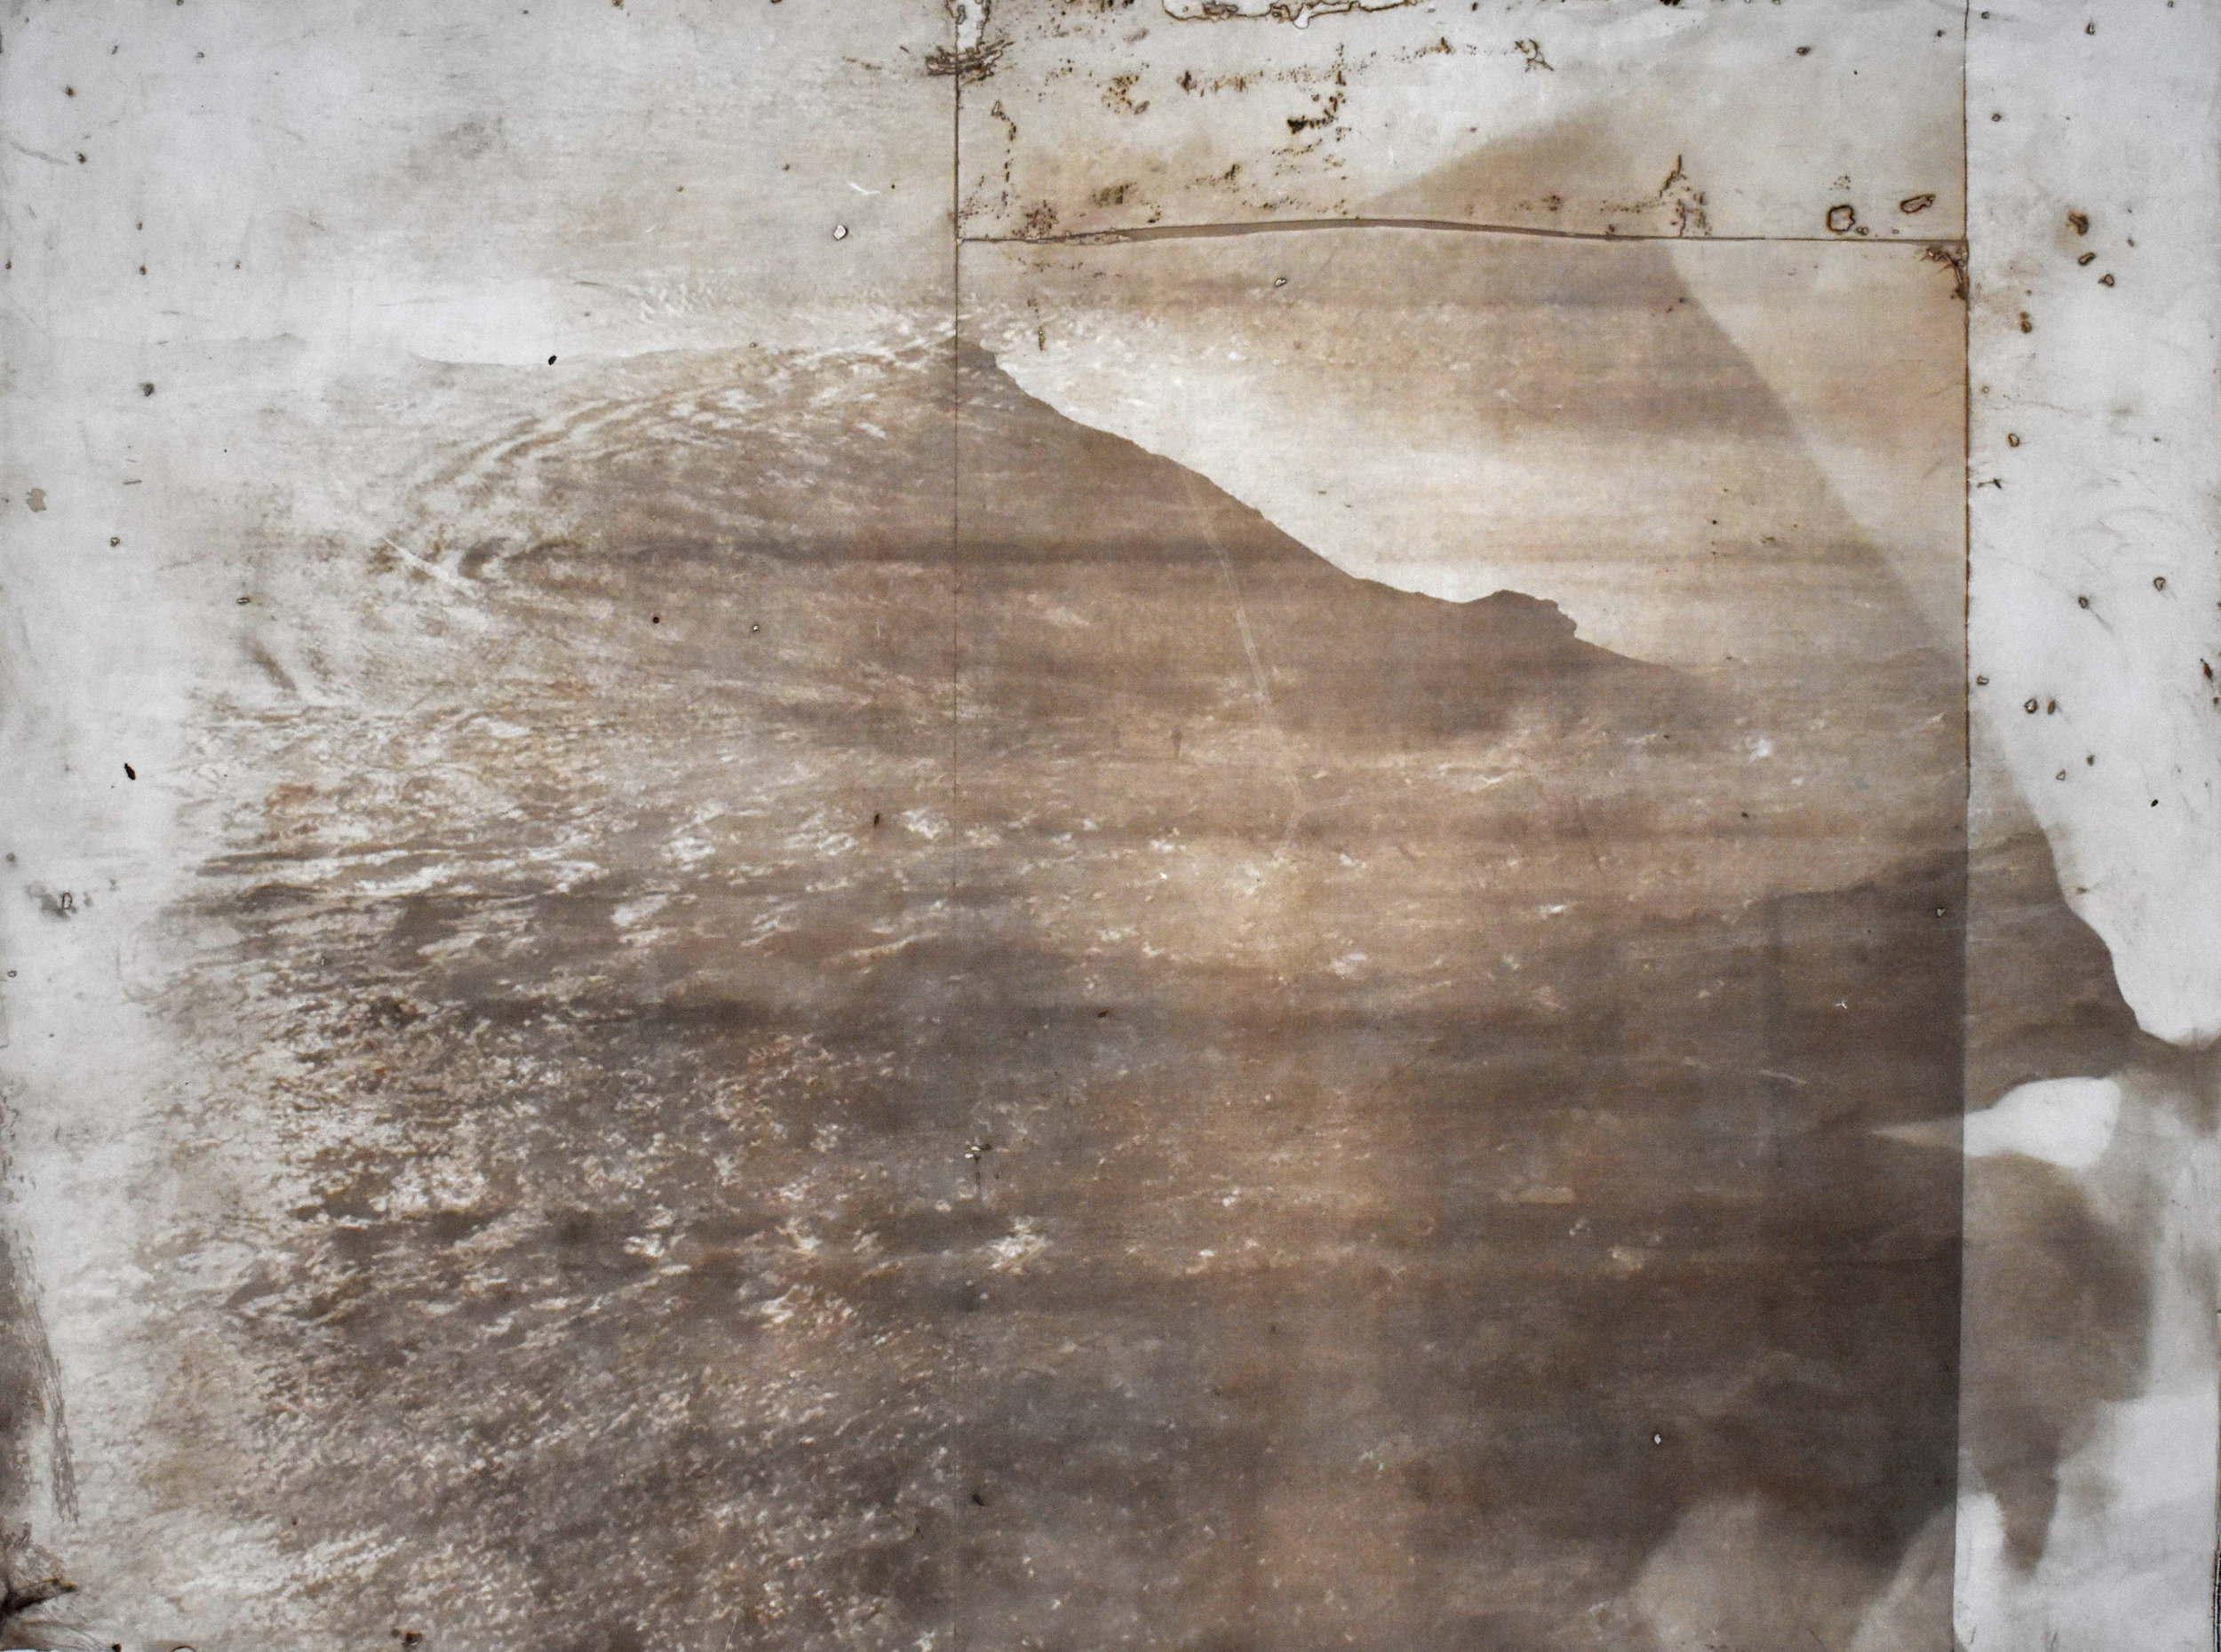 Over and Under (Whirlpool),  No. 9, 2019. Series of 9 photopolymer prints (from Prussian blue to orange oxide) printed on semi-transparent Thai paper. 137 x 109cm.. Superposition of 2 photographs taken by the artist: fumerole pits in Námafjall, Iceland and a whirlpool off the Cap Fréhel, France.